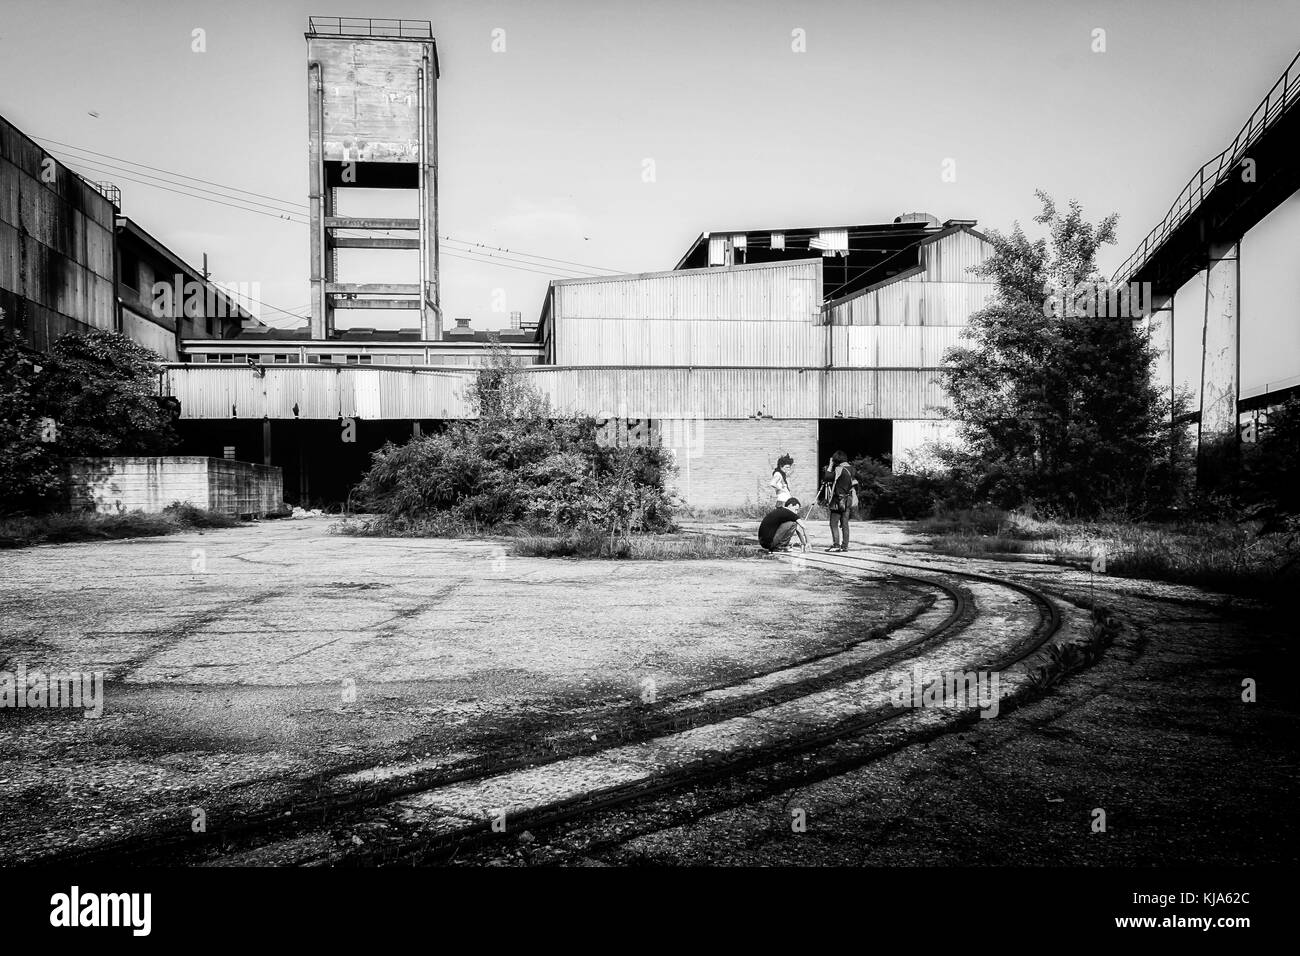 an abandoned factory in Italy - Stock Image